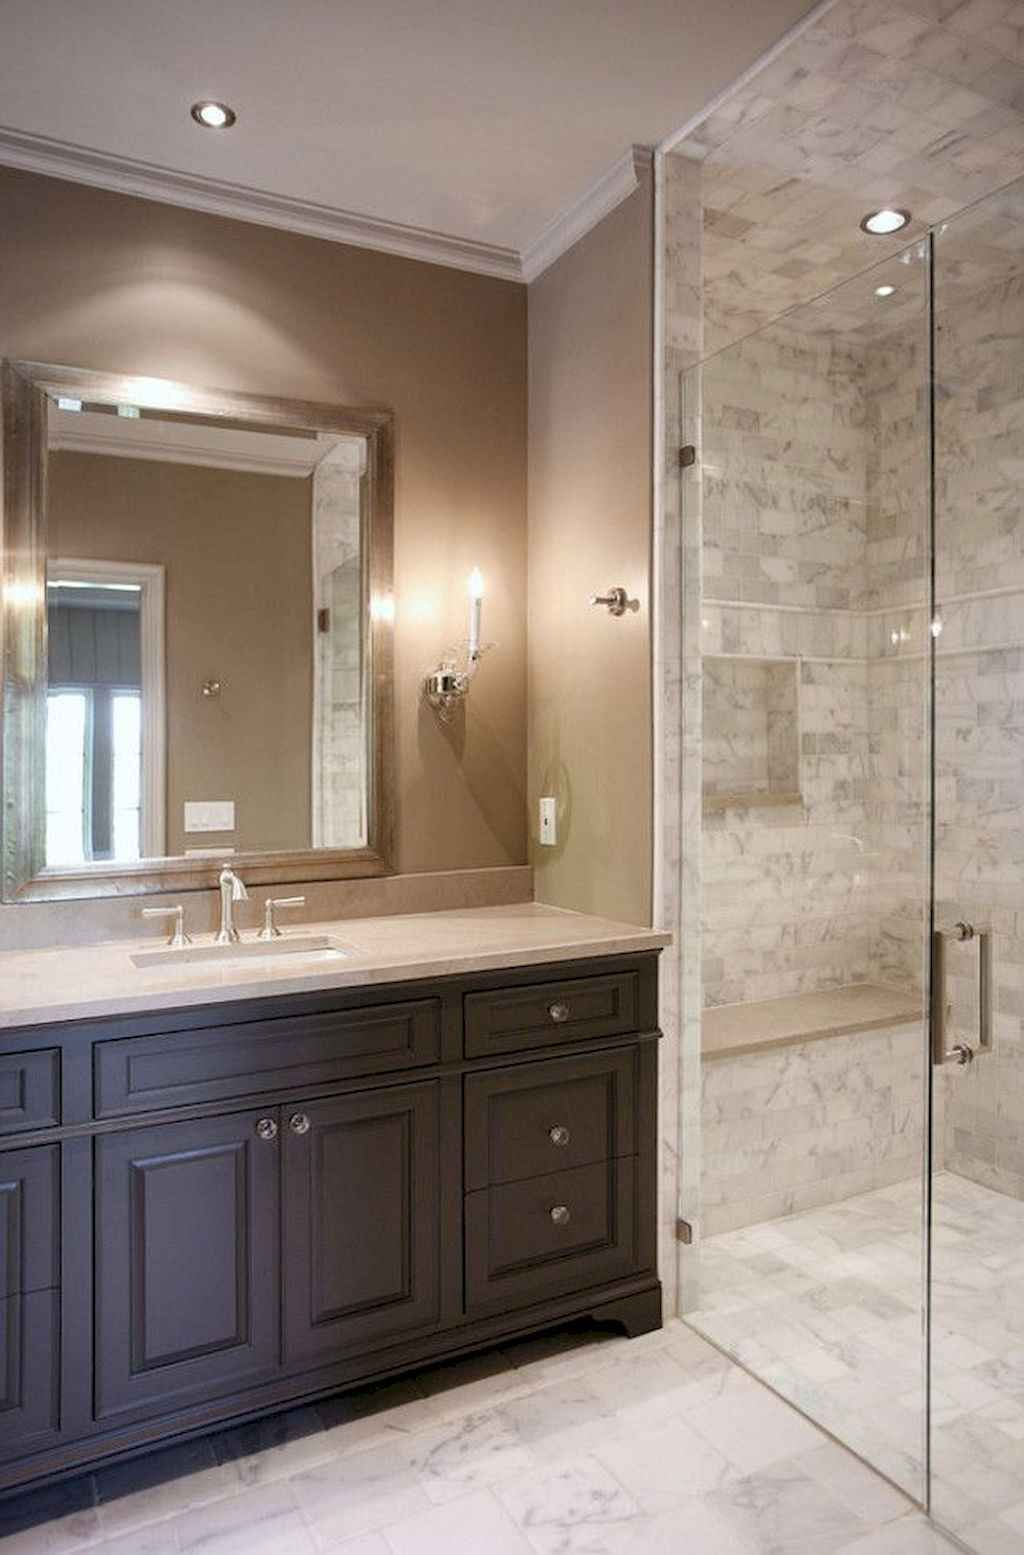 Pin By Celeste Ireland On Mom And Dad S New Home In 2020 Bathrooms Remodel Traditional Bathroom Shower Remodel